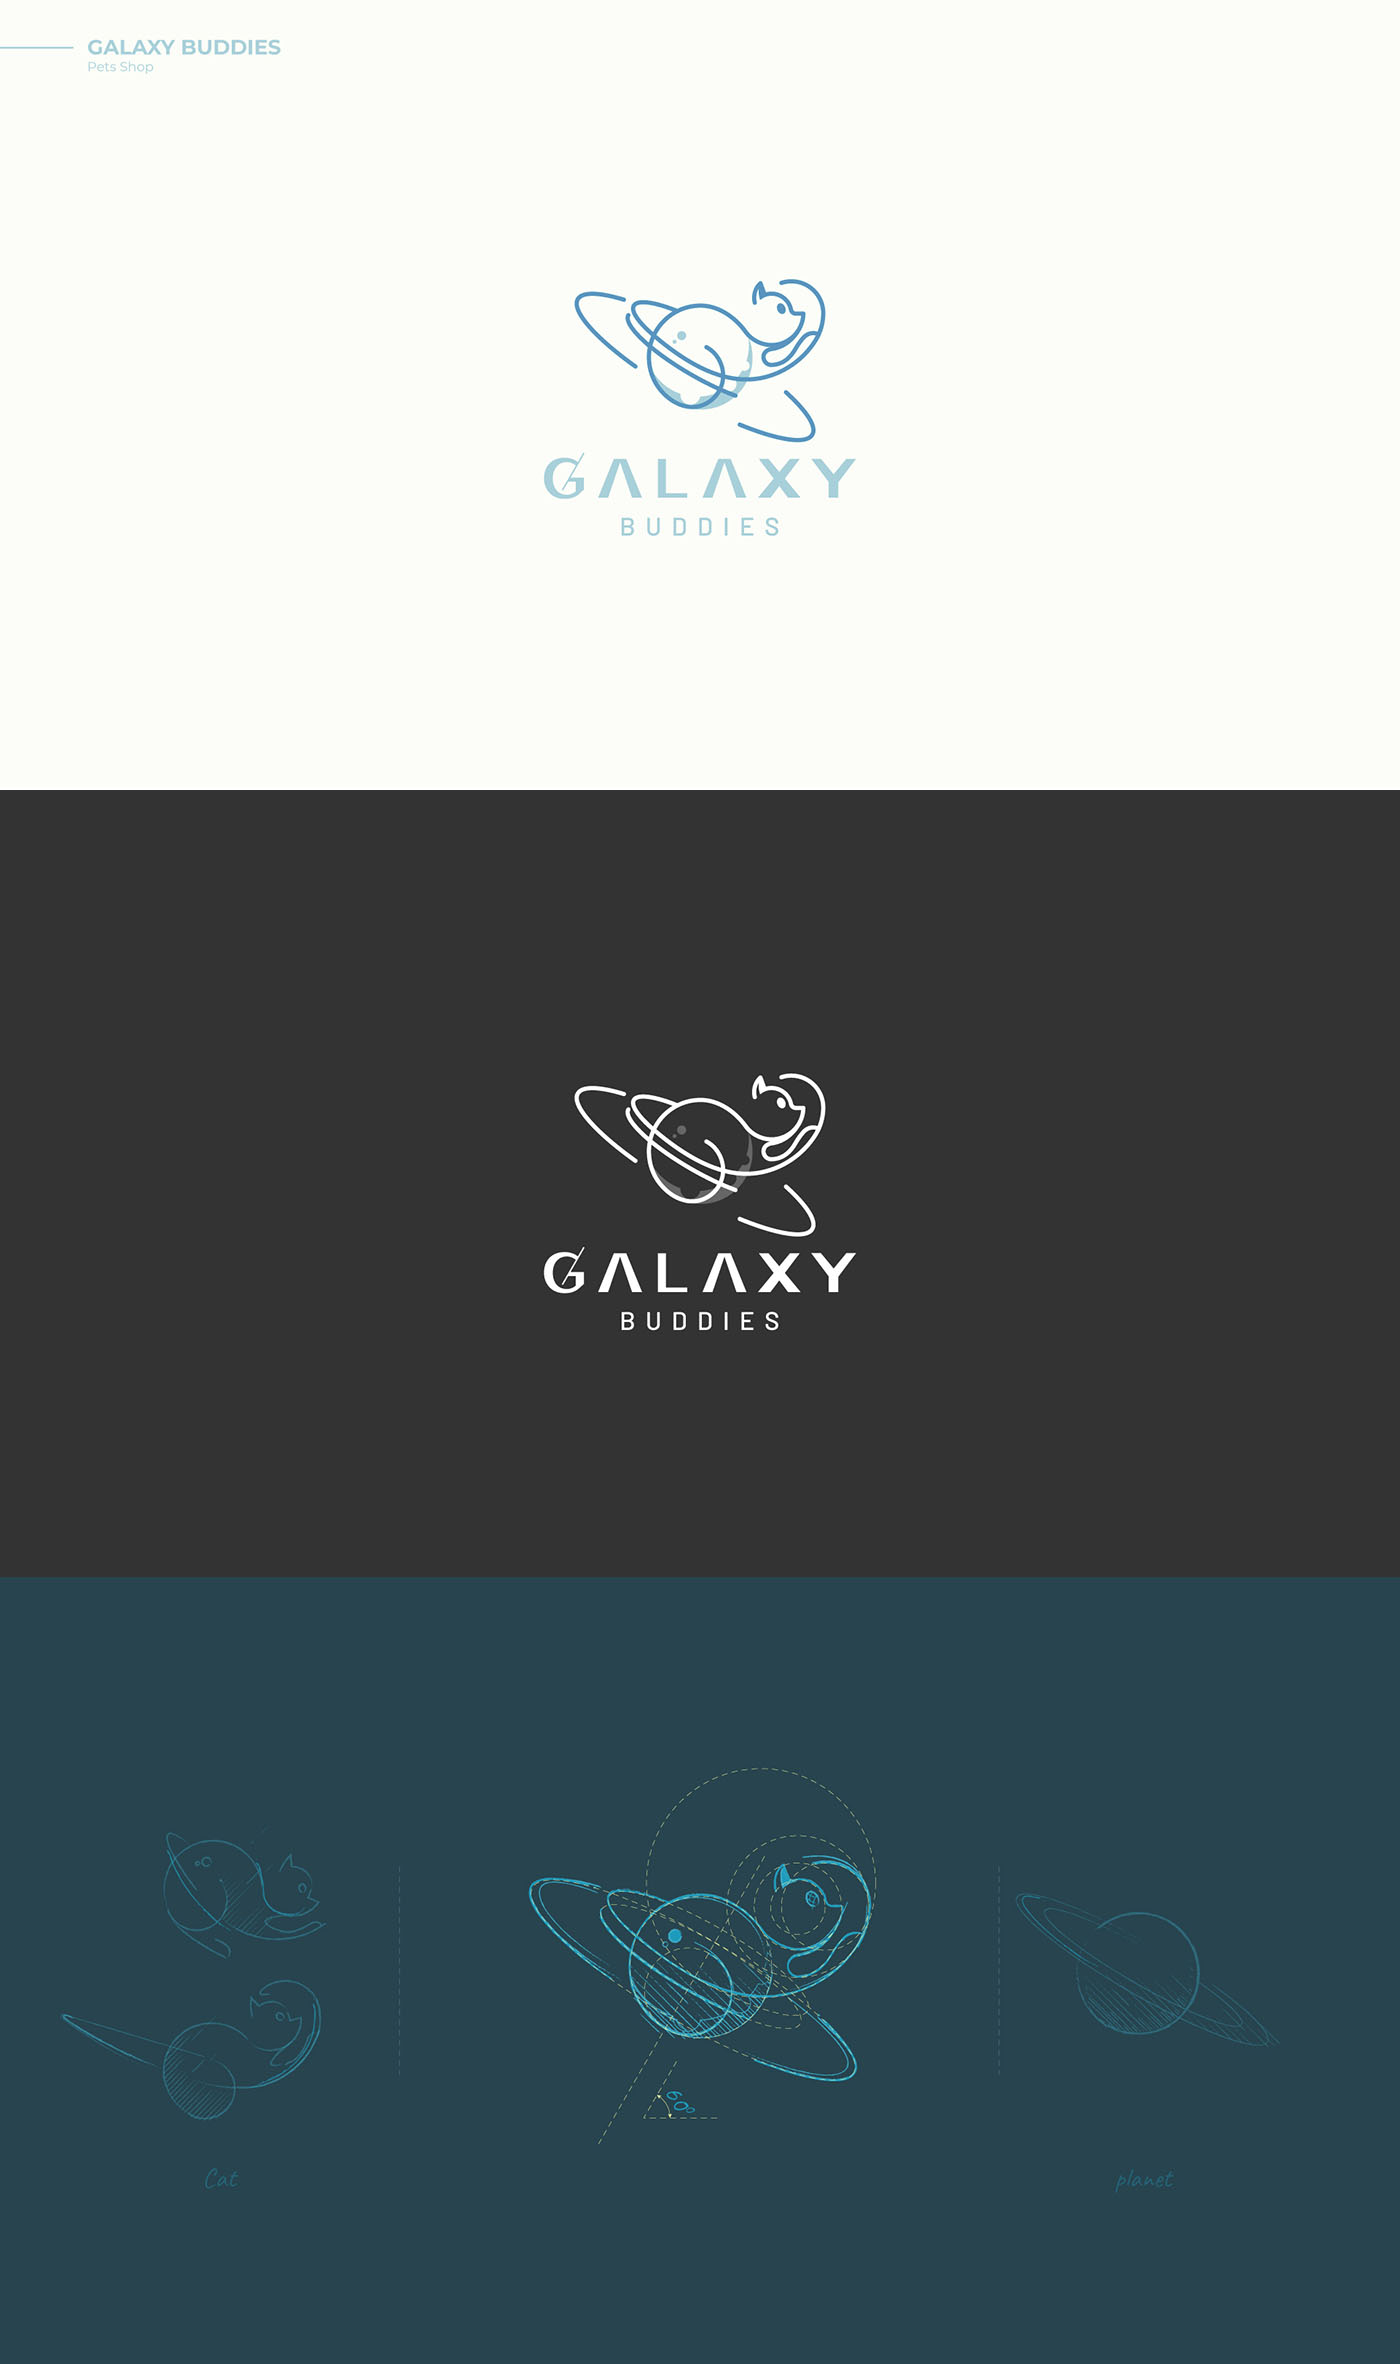 Galaxy Buddies - Cat logo design by DAINOGO